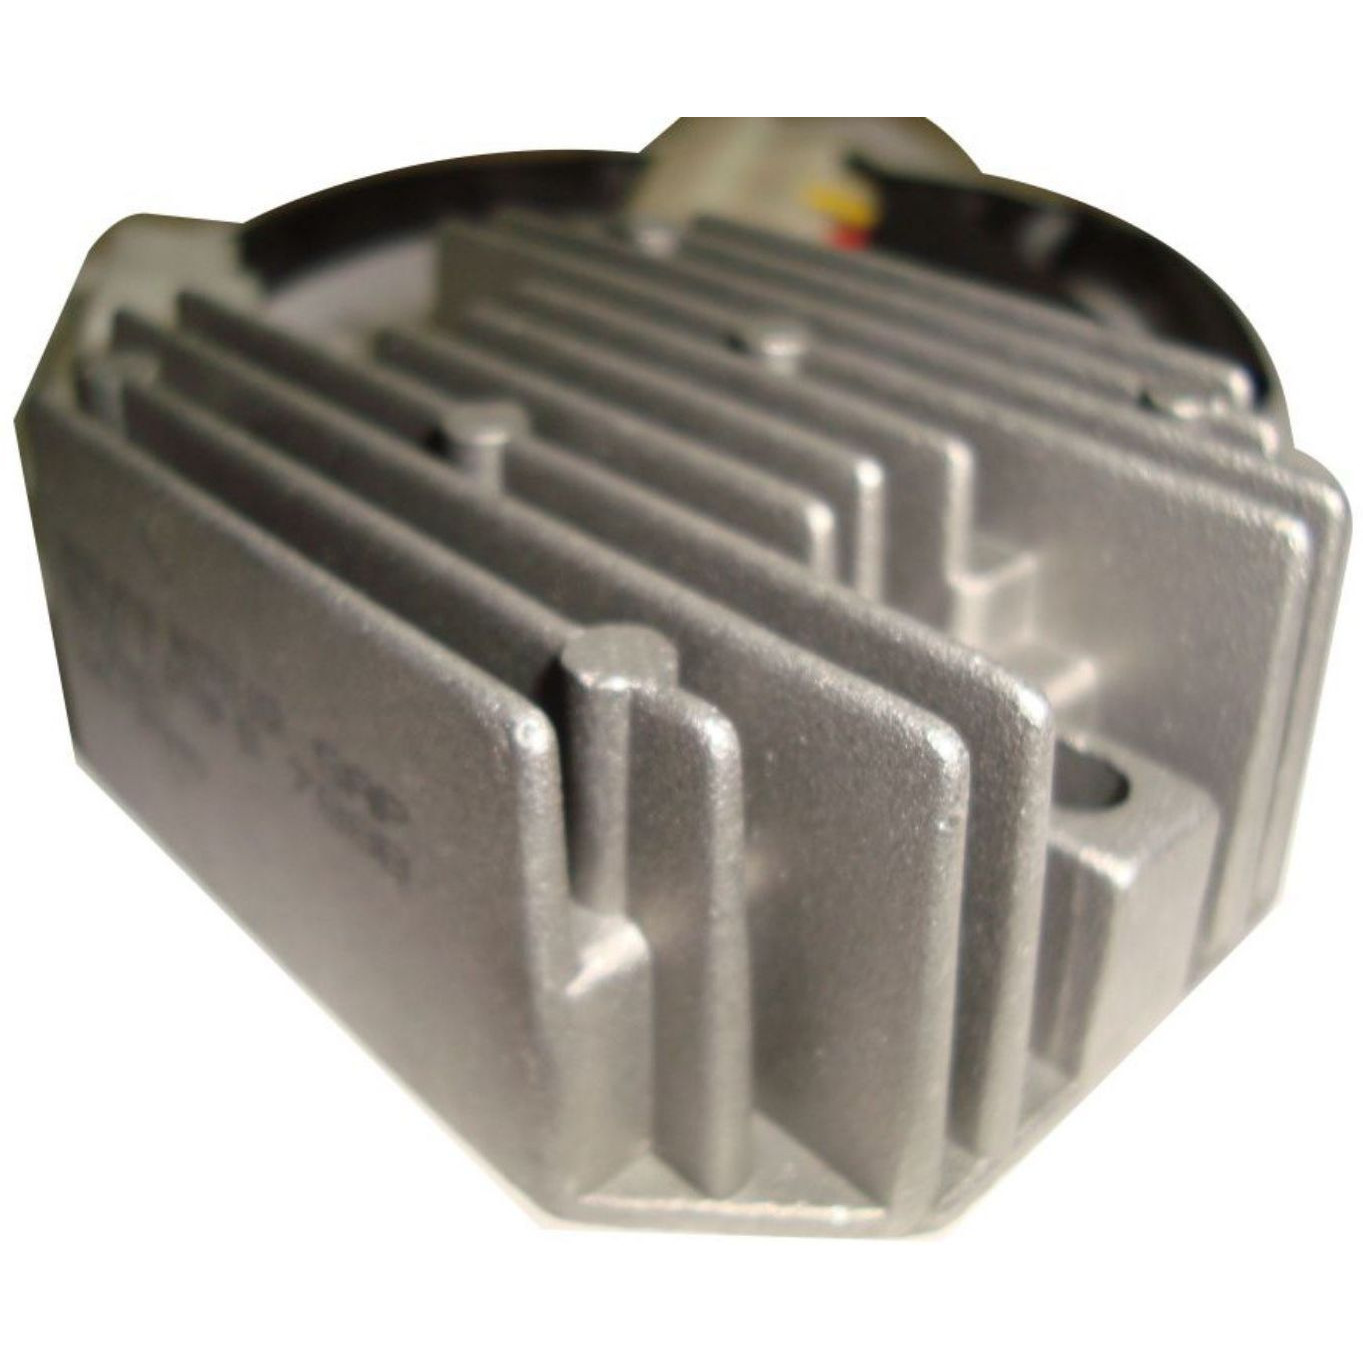 3Phase 7Wires Regulator Rectifier -Fits RE ES Models,Royal Enfield Motorcycles